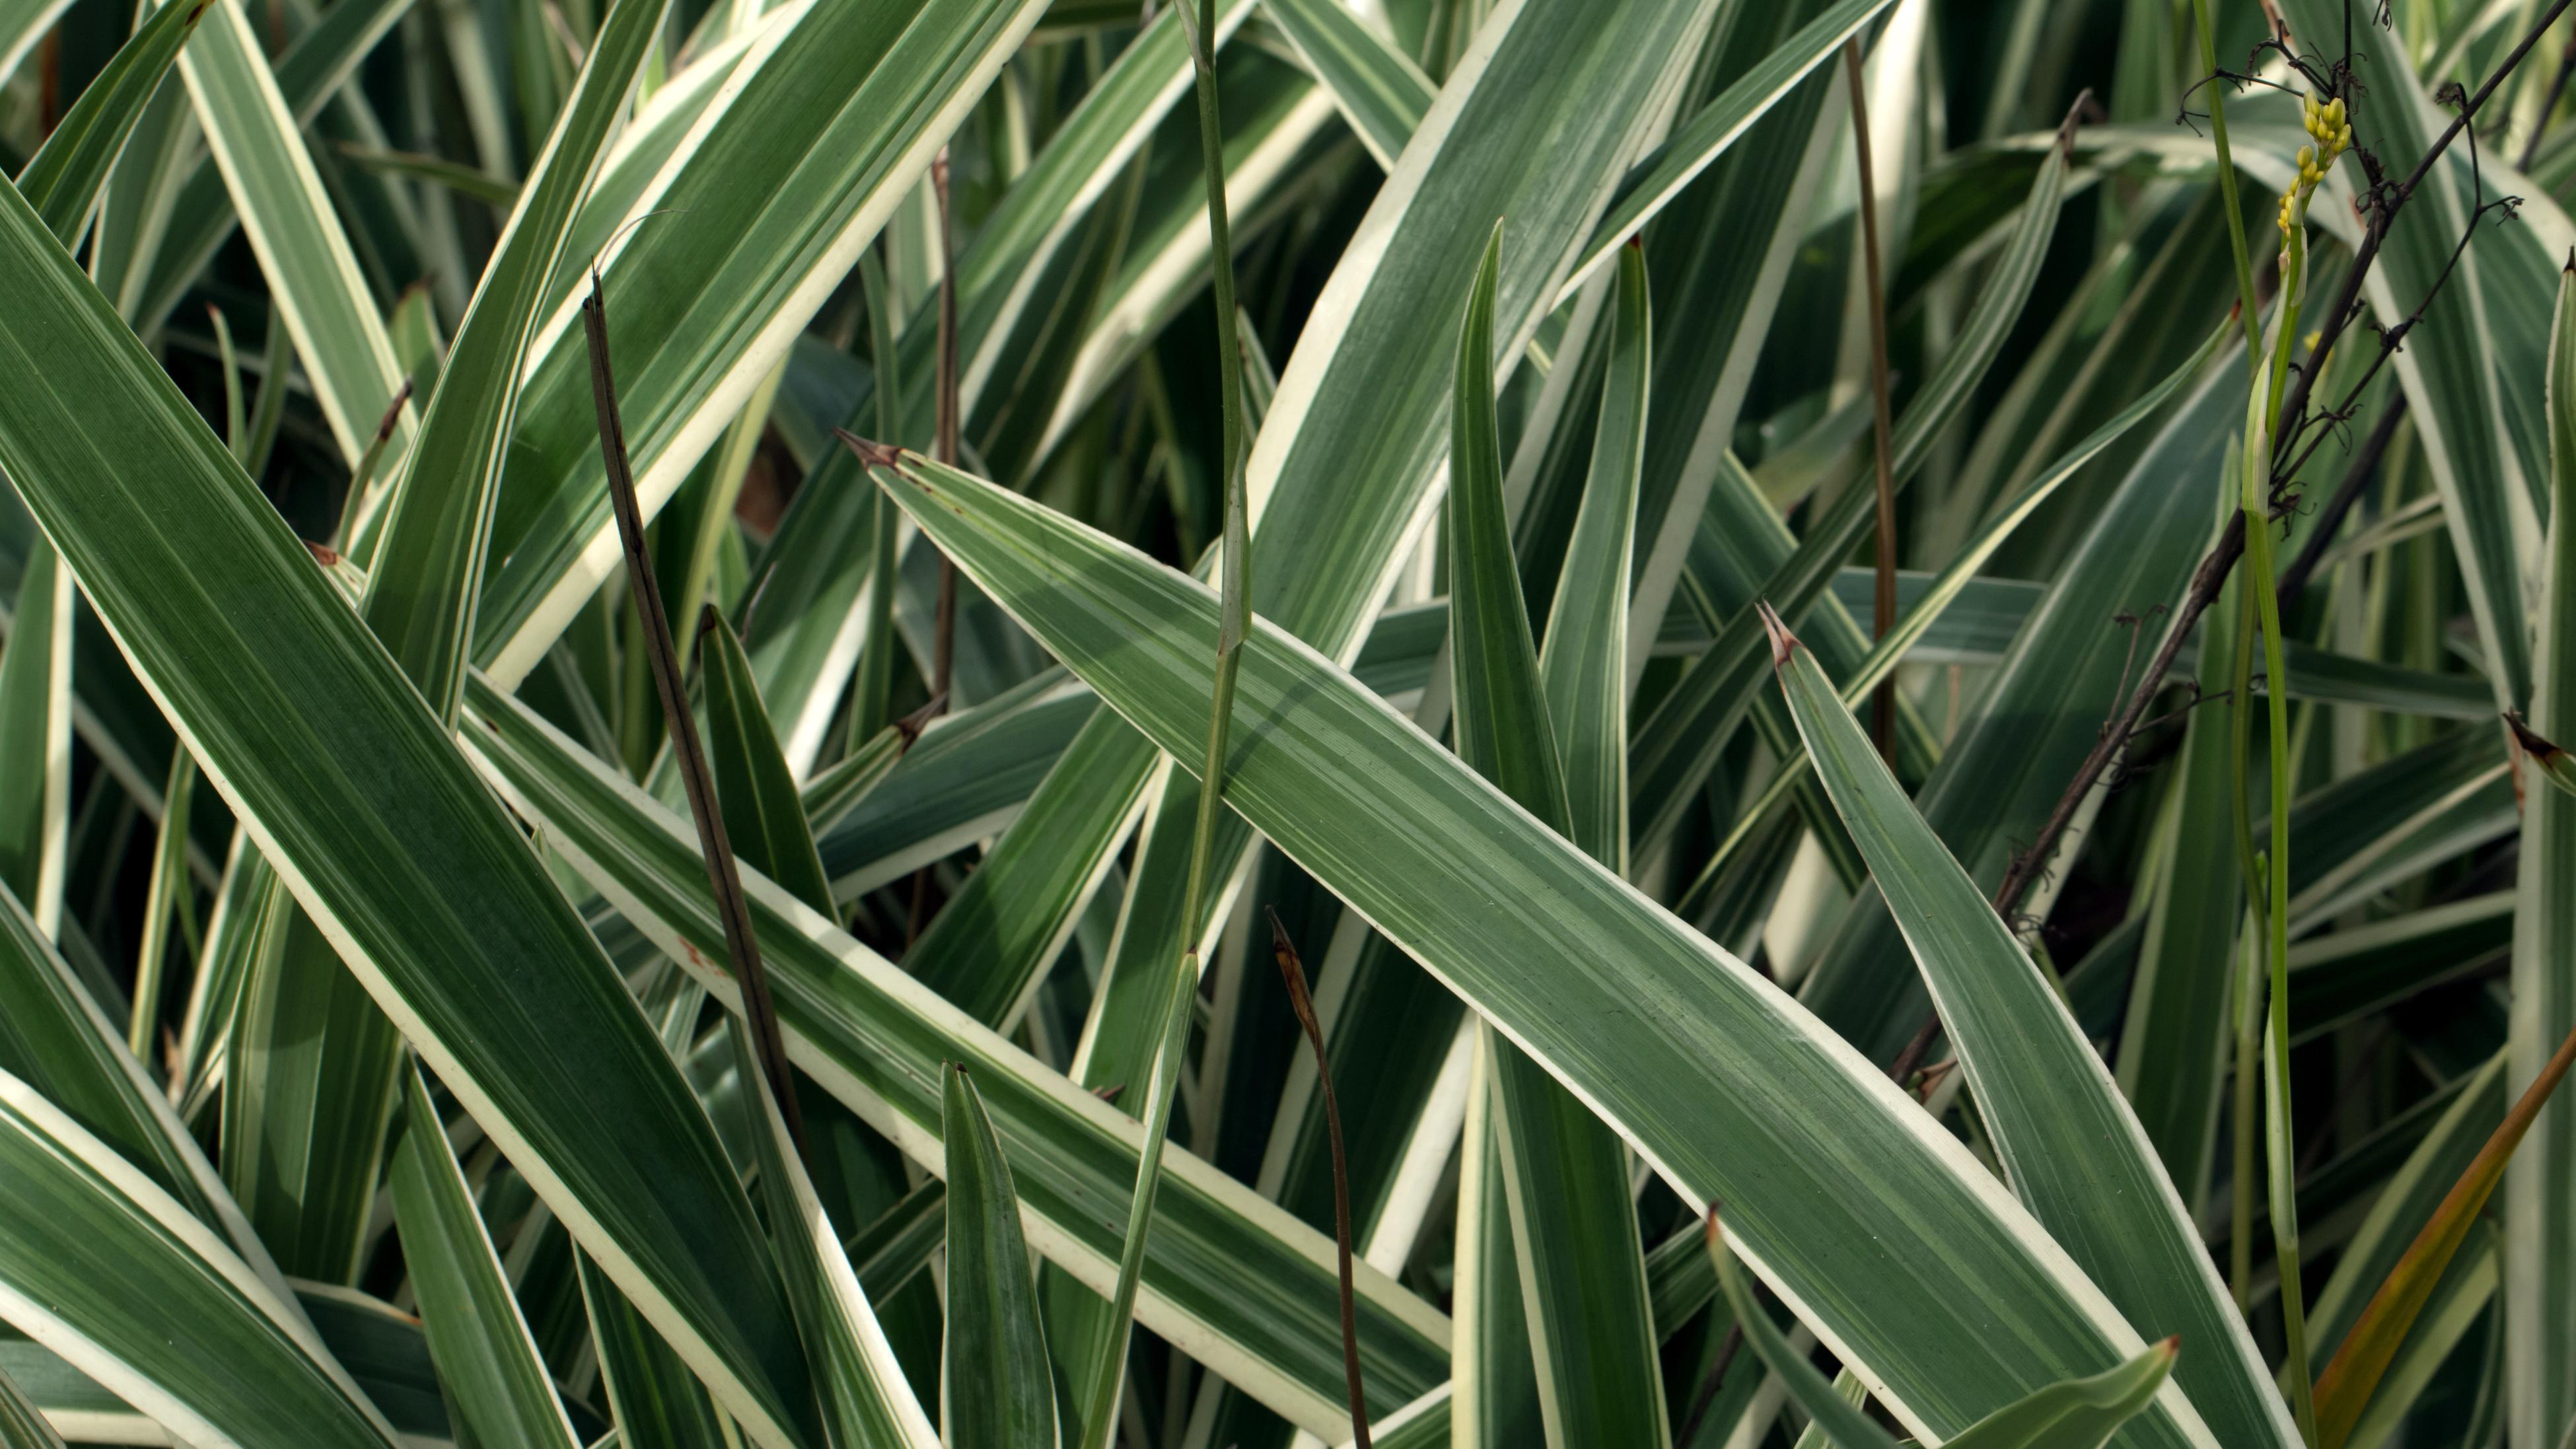 The Dianella silverado plant with bands of white around the edges of the leaves.